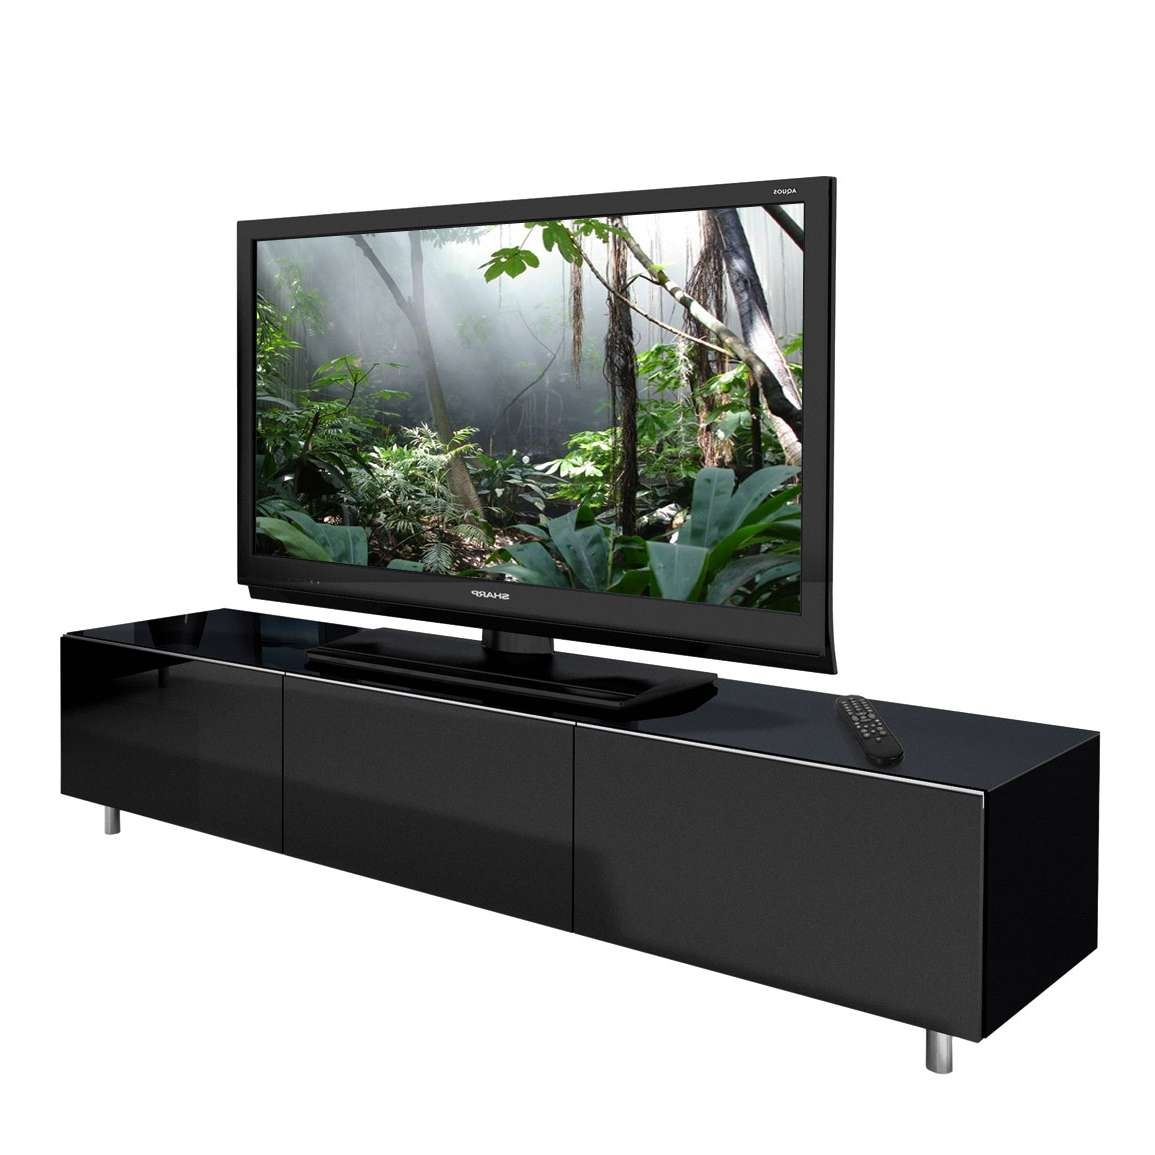 Spectral Just Racks Jrl1650s Gloss Black Tv Cabinet – Just Racks With Regard To Gloss Tv Stands (View 7 of 15)